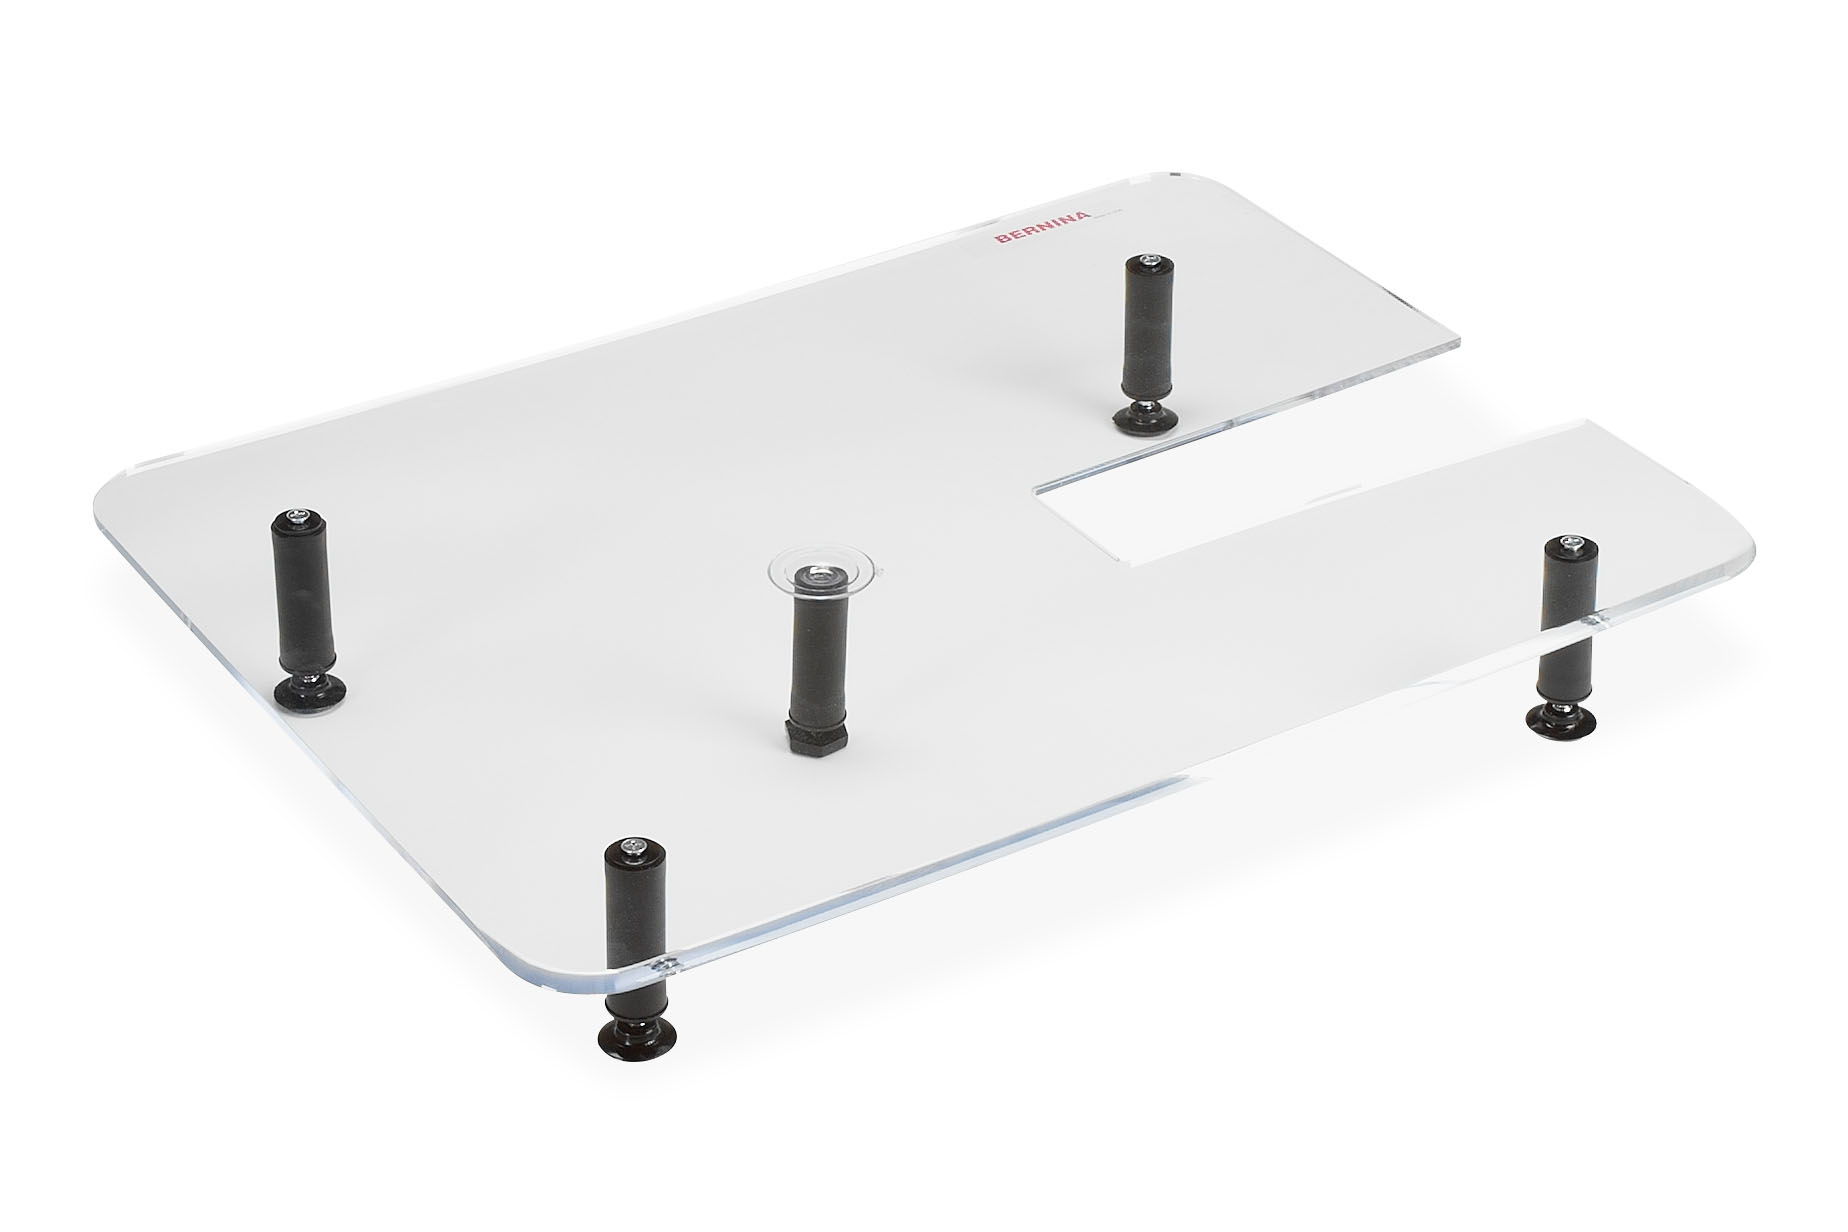 Plexiglass extension table for quilting